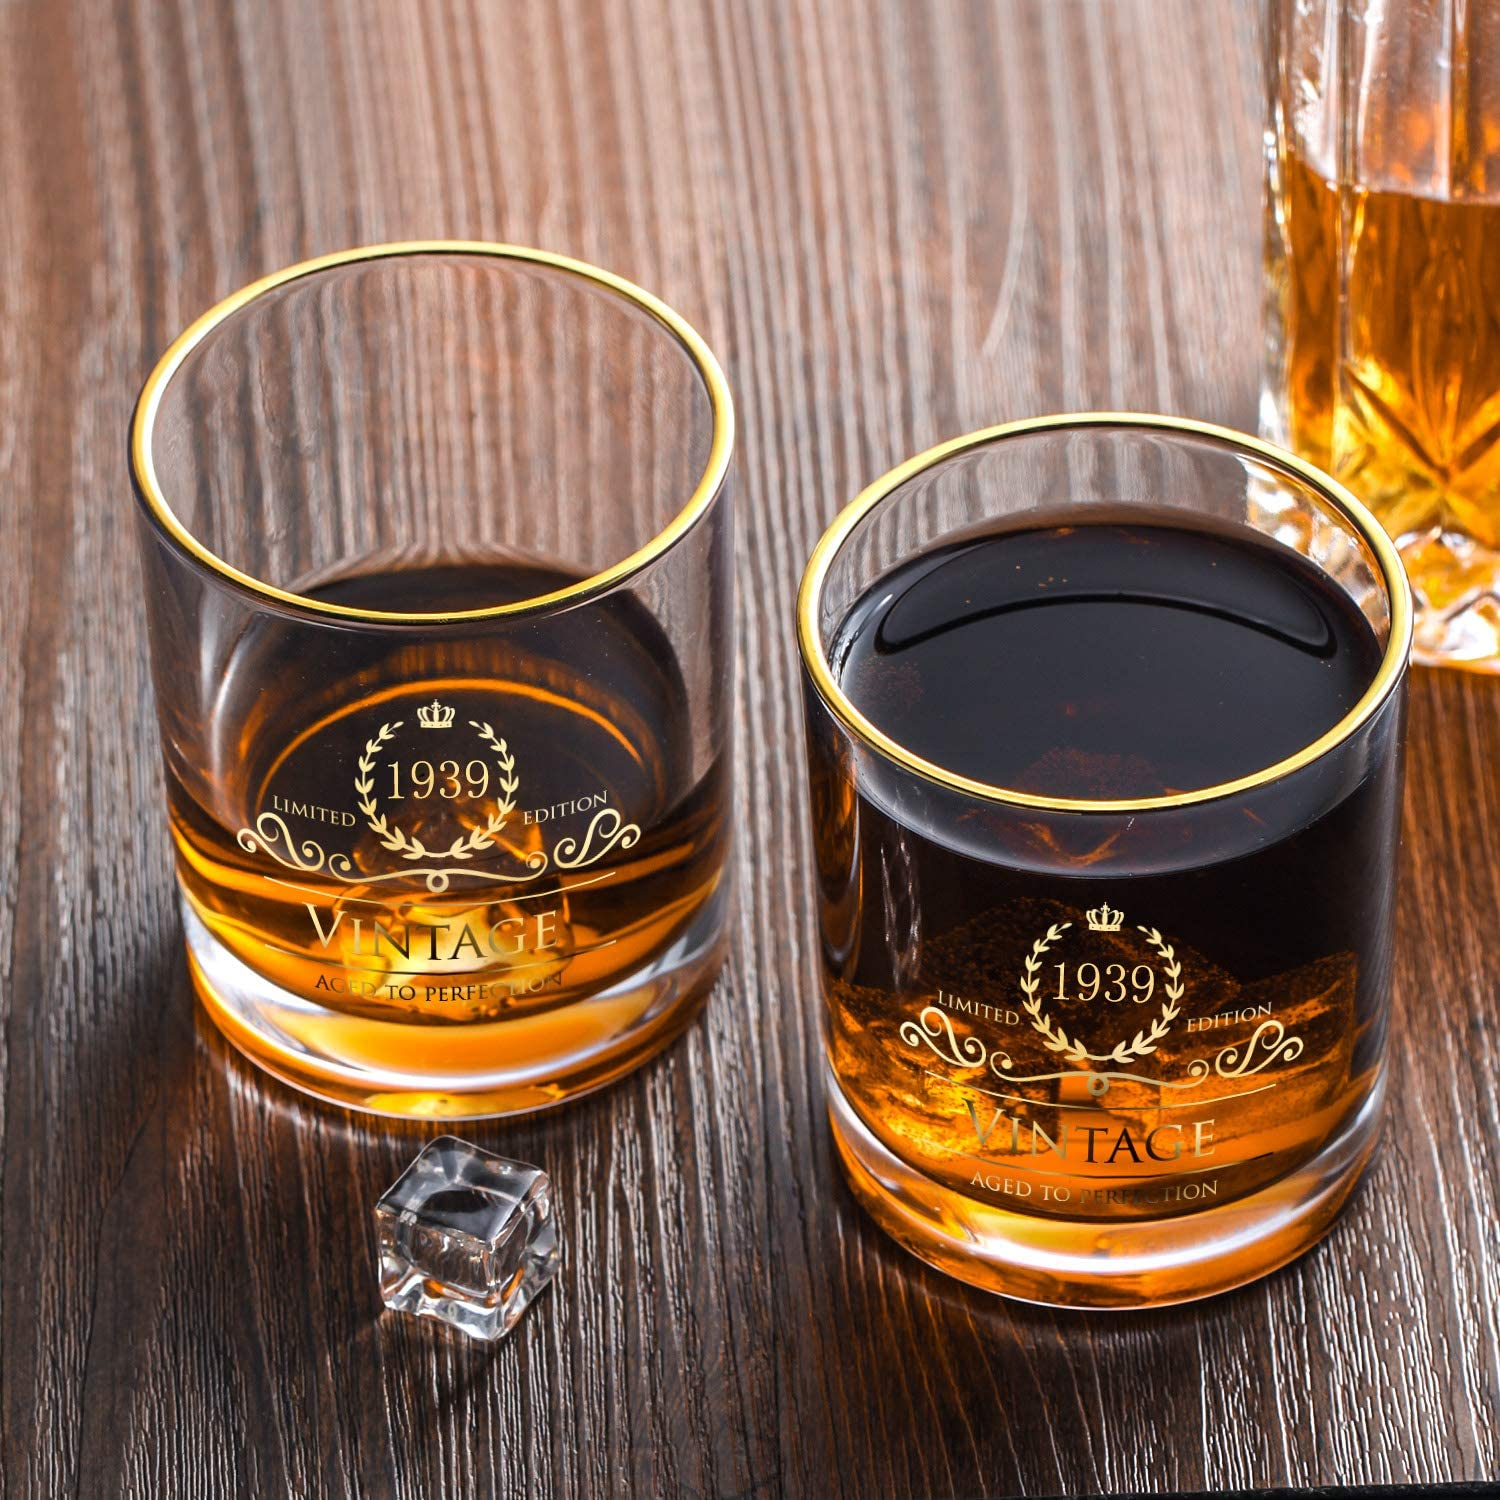 10 oz Bourbon Scotch Perfect for Gift and Home Use 1939 81th Birthday//Anniversary Gift for Men//Dad//Son Vintage Unfading 24K Gold Hand Crafted Old Fashioned Whiskey Glasses Party Decorations